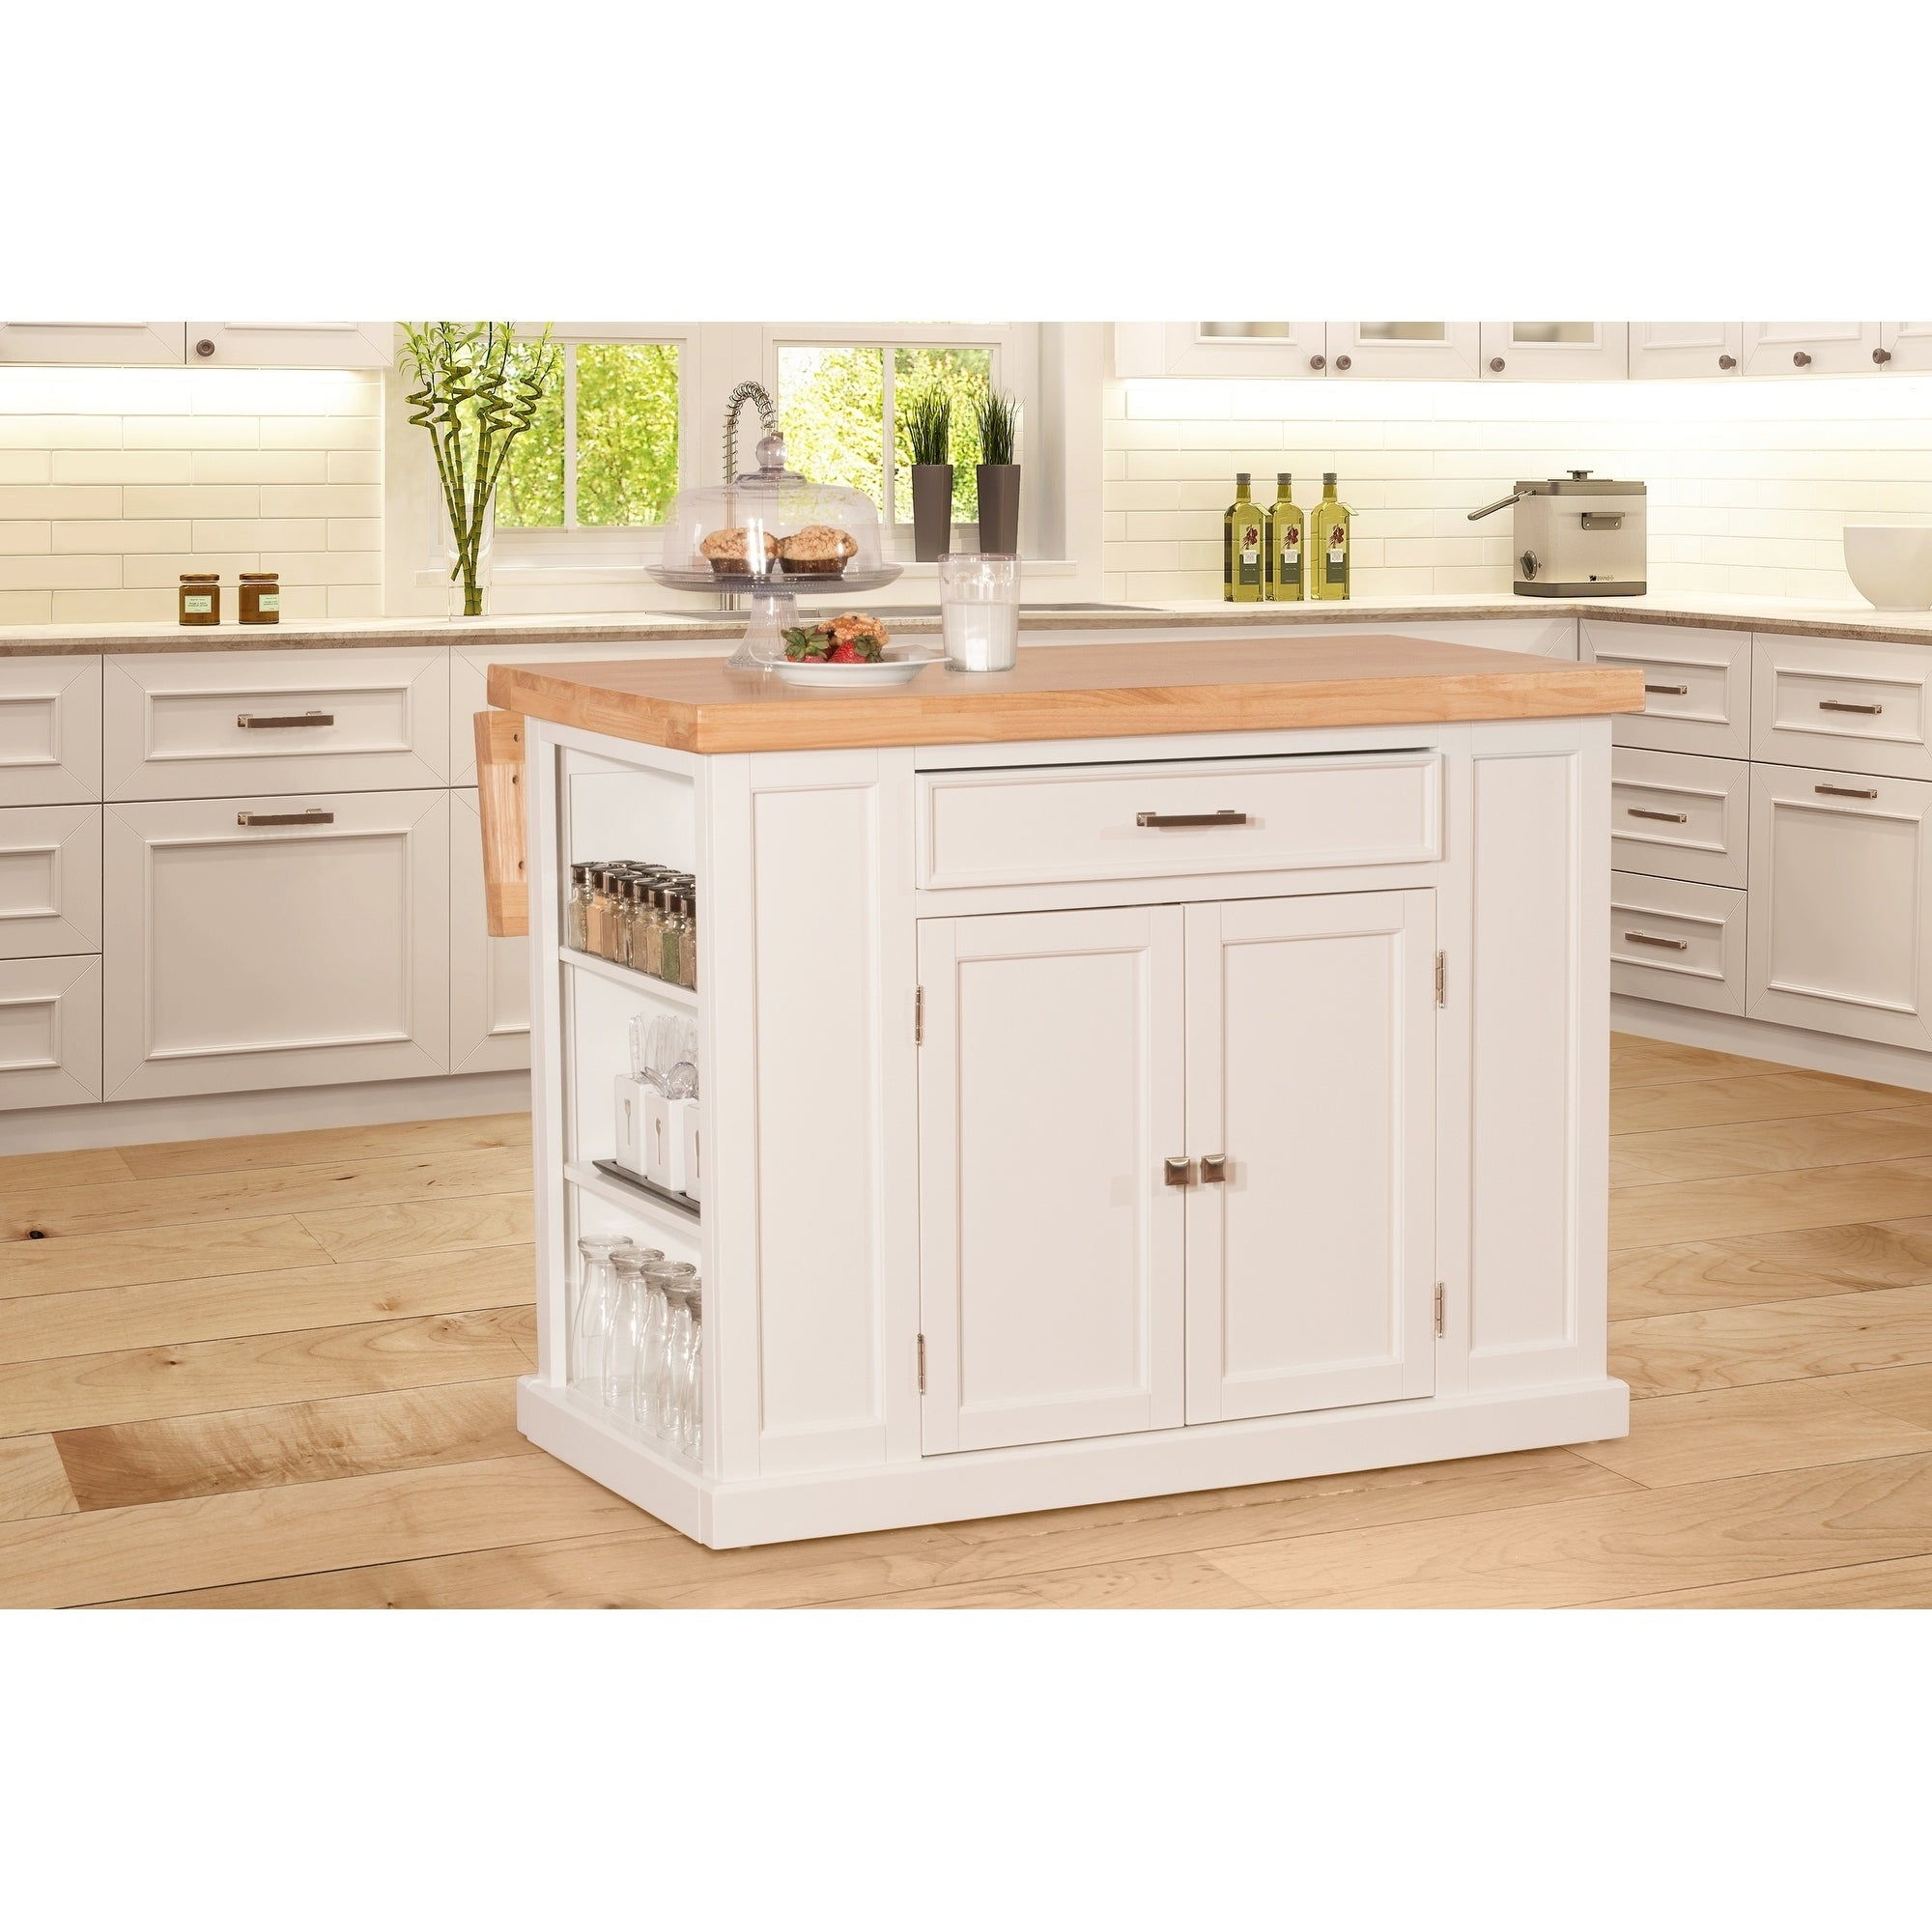 Hilale Flemington Kitchen Island In White With Wood Top On Free Shipping Today 21904585